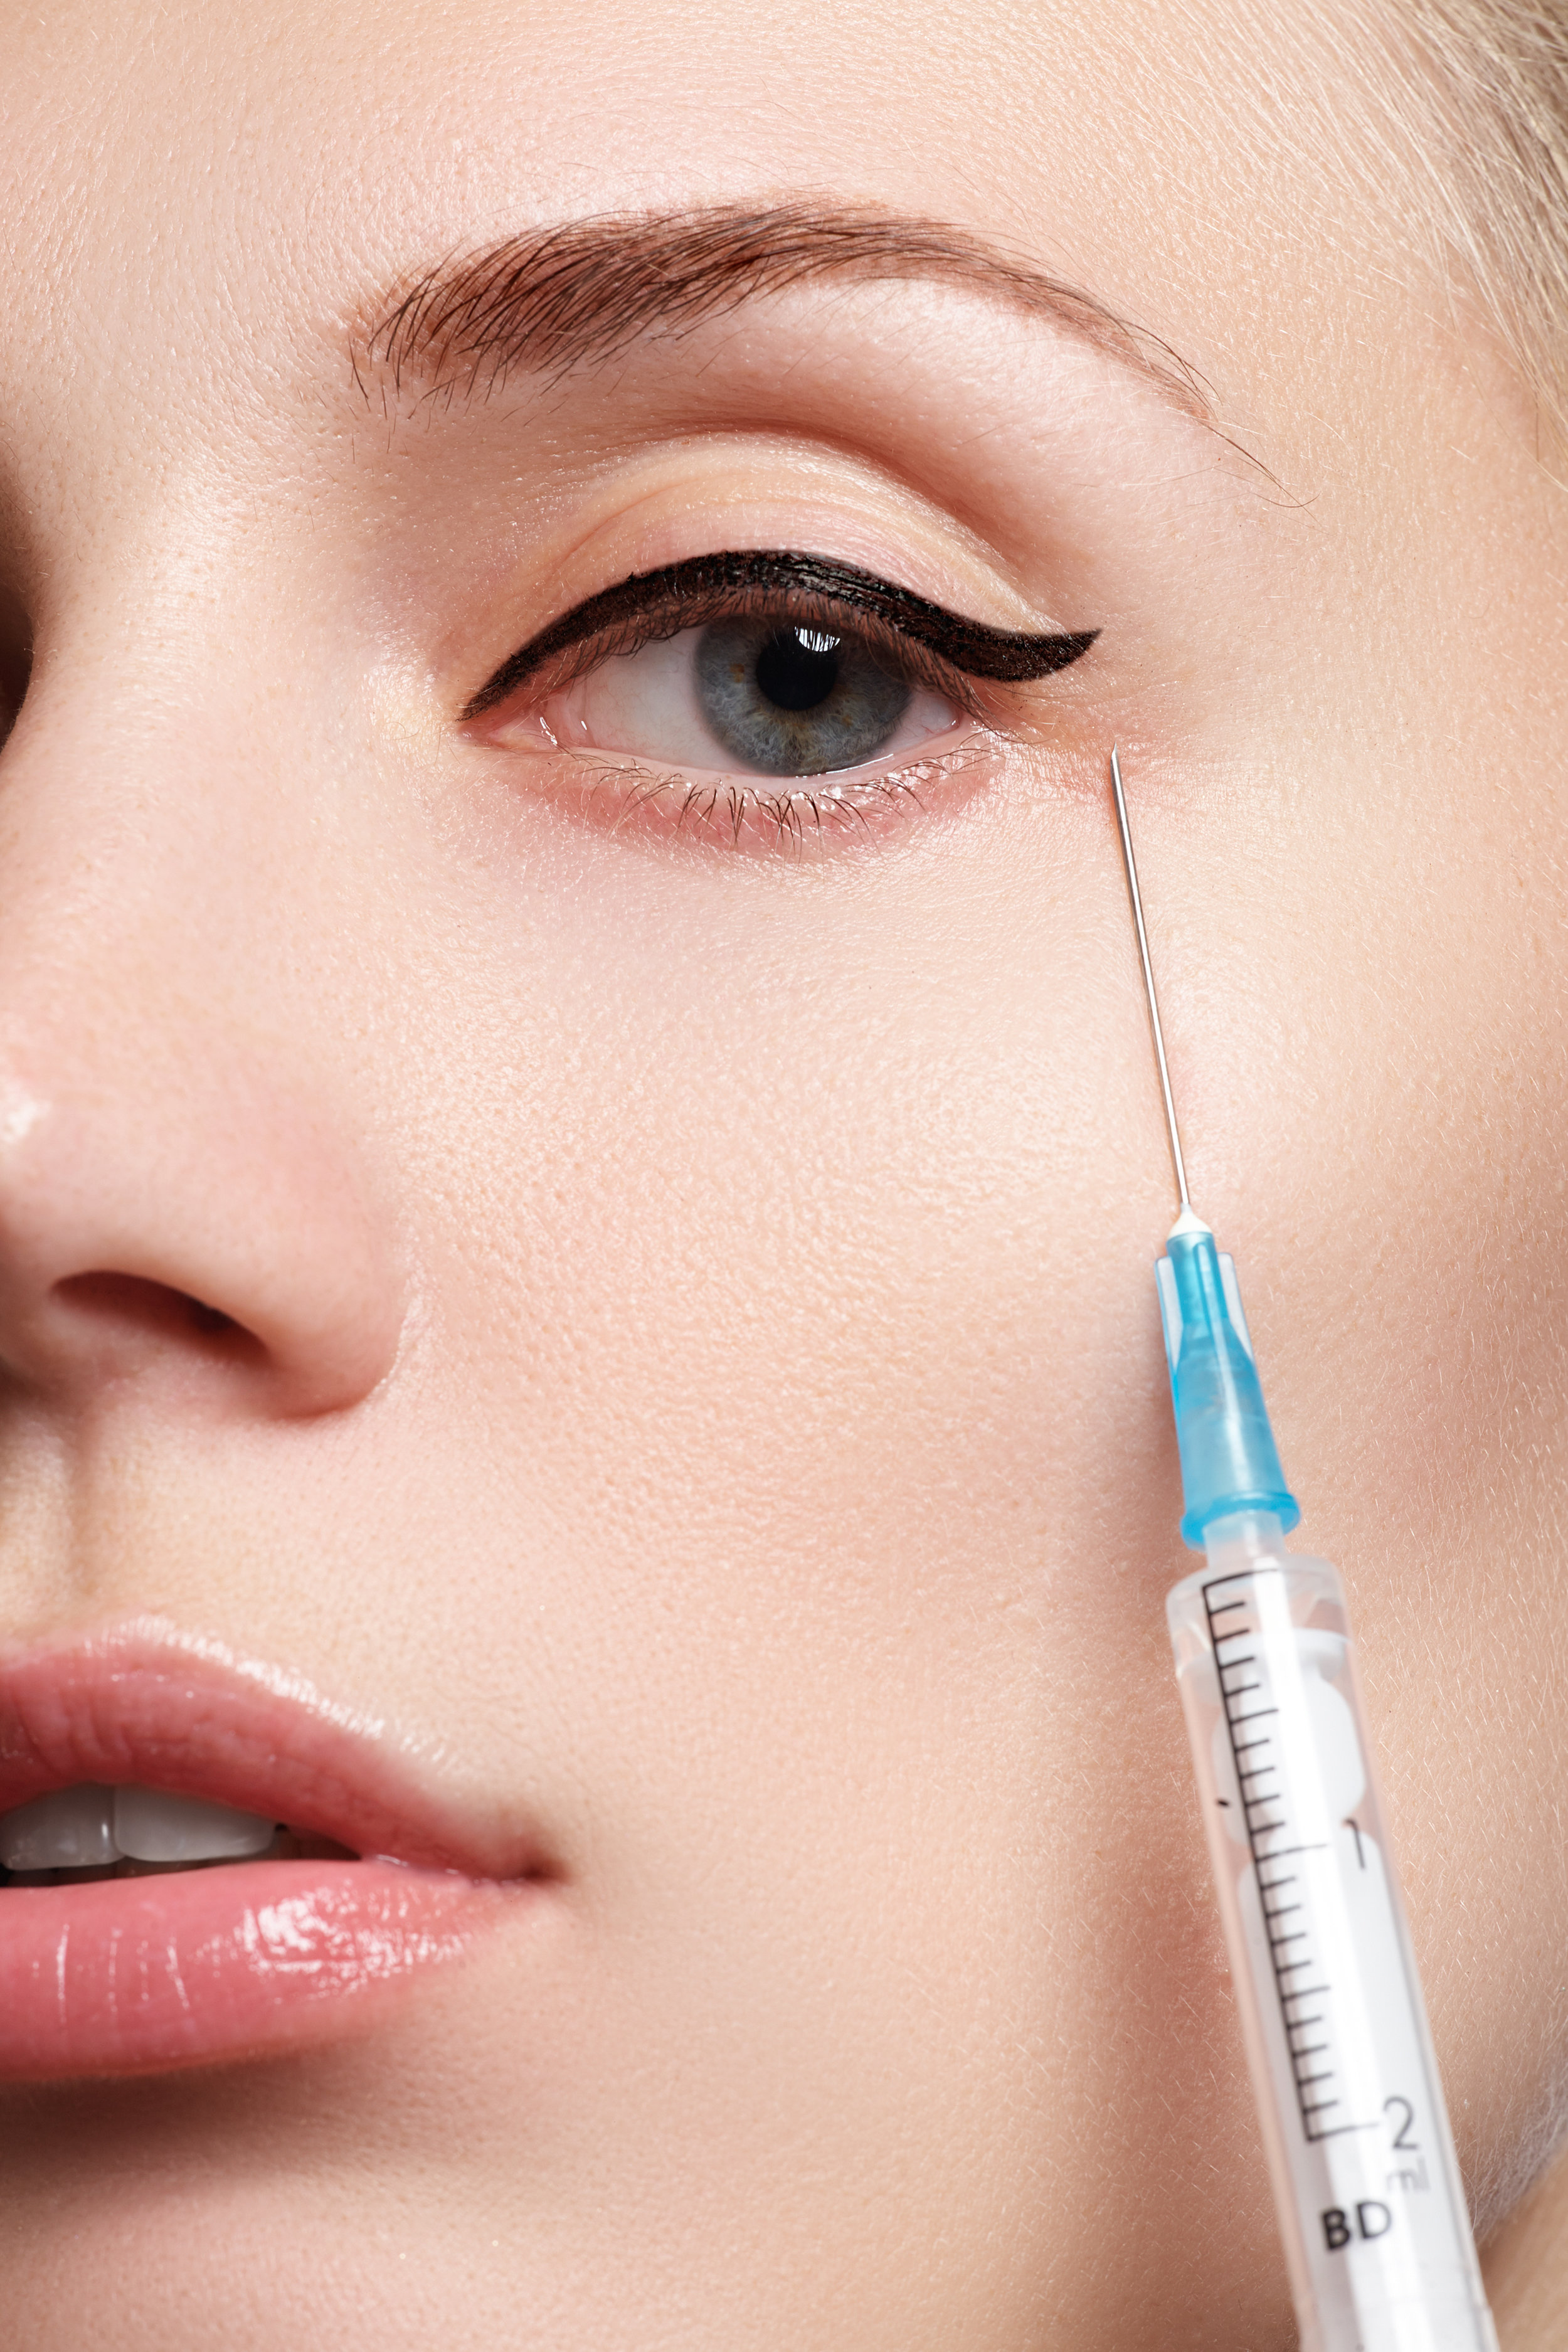 My Experience with Under-eye Dermal Fillers — LIFE OF JENNA